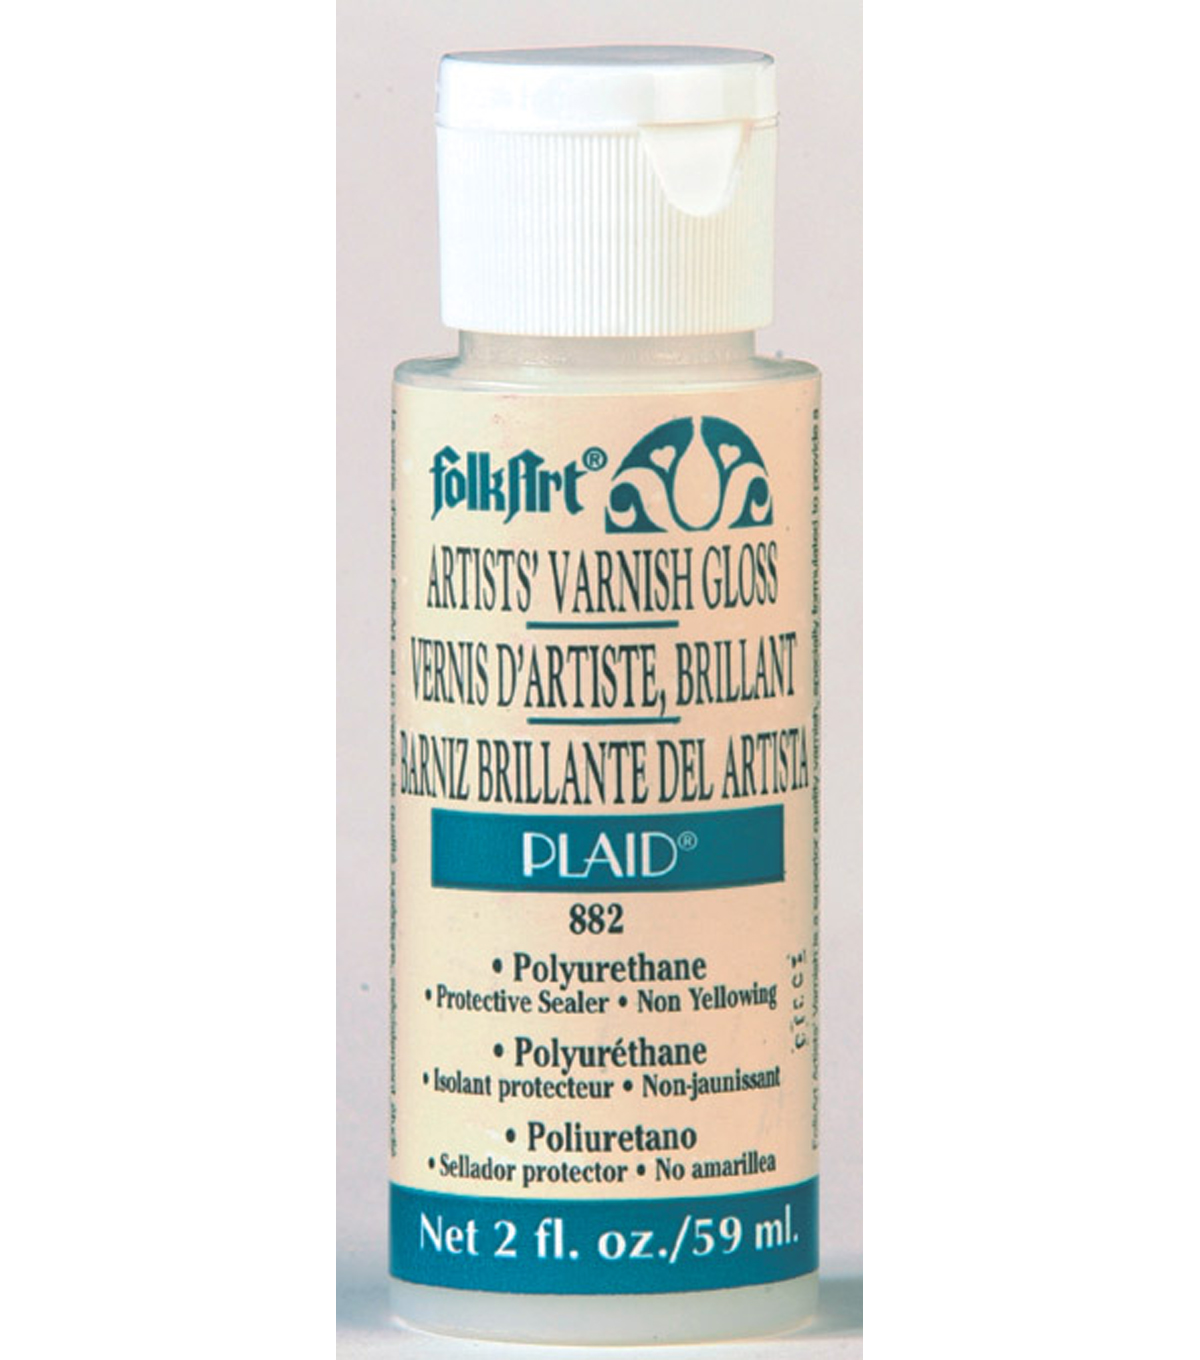 FolkArt Artist Varnish Gloss 2 Oz.